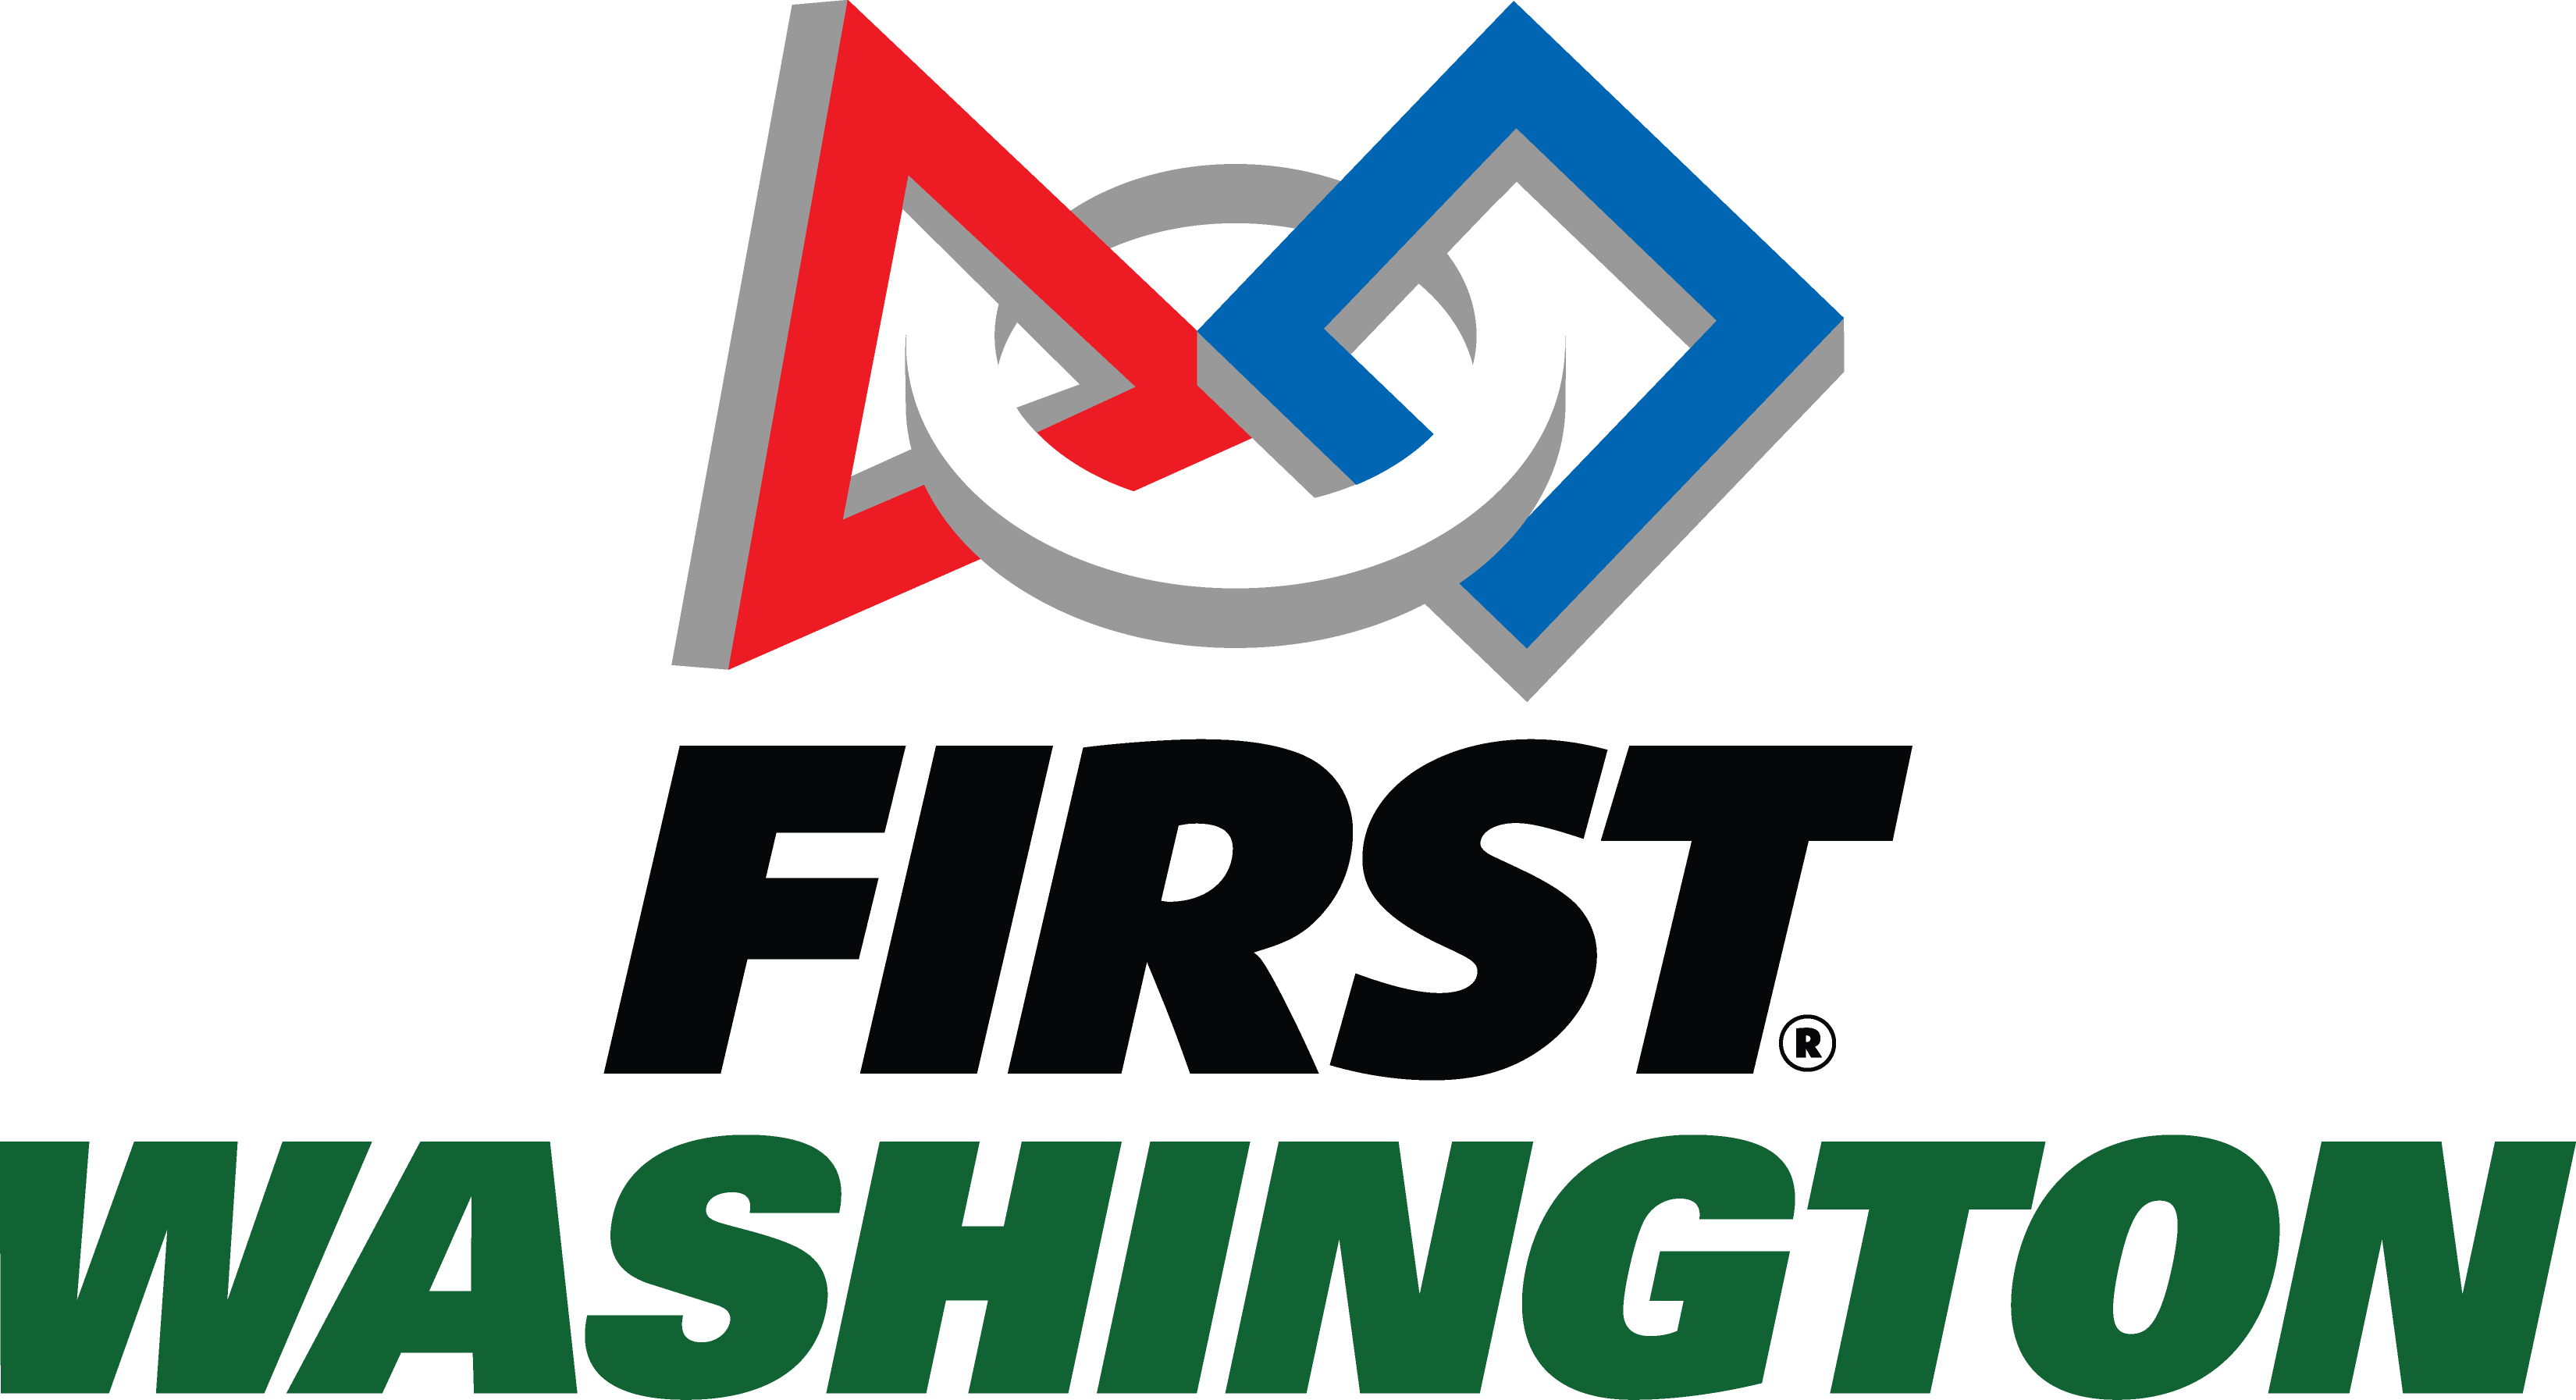 First Washington logo